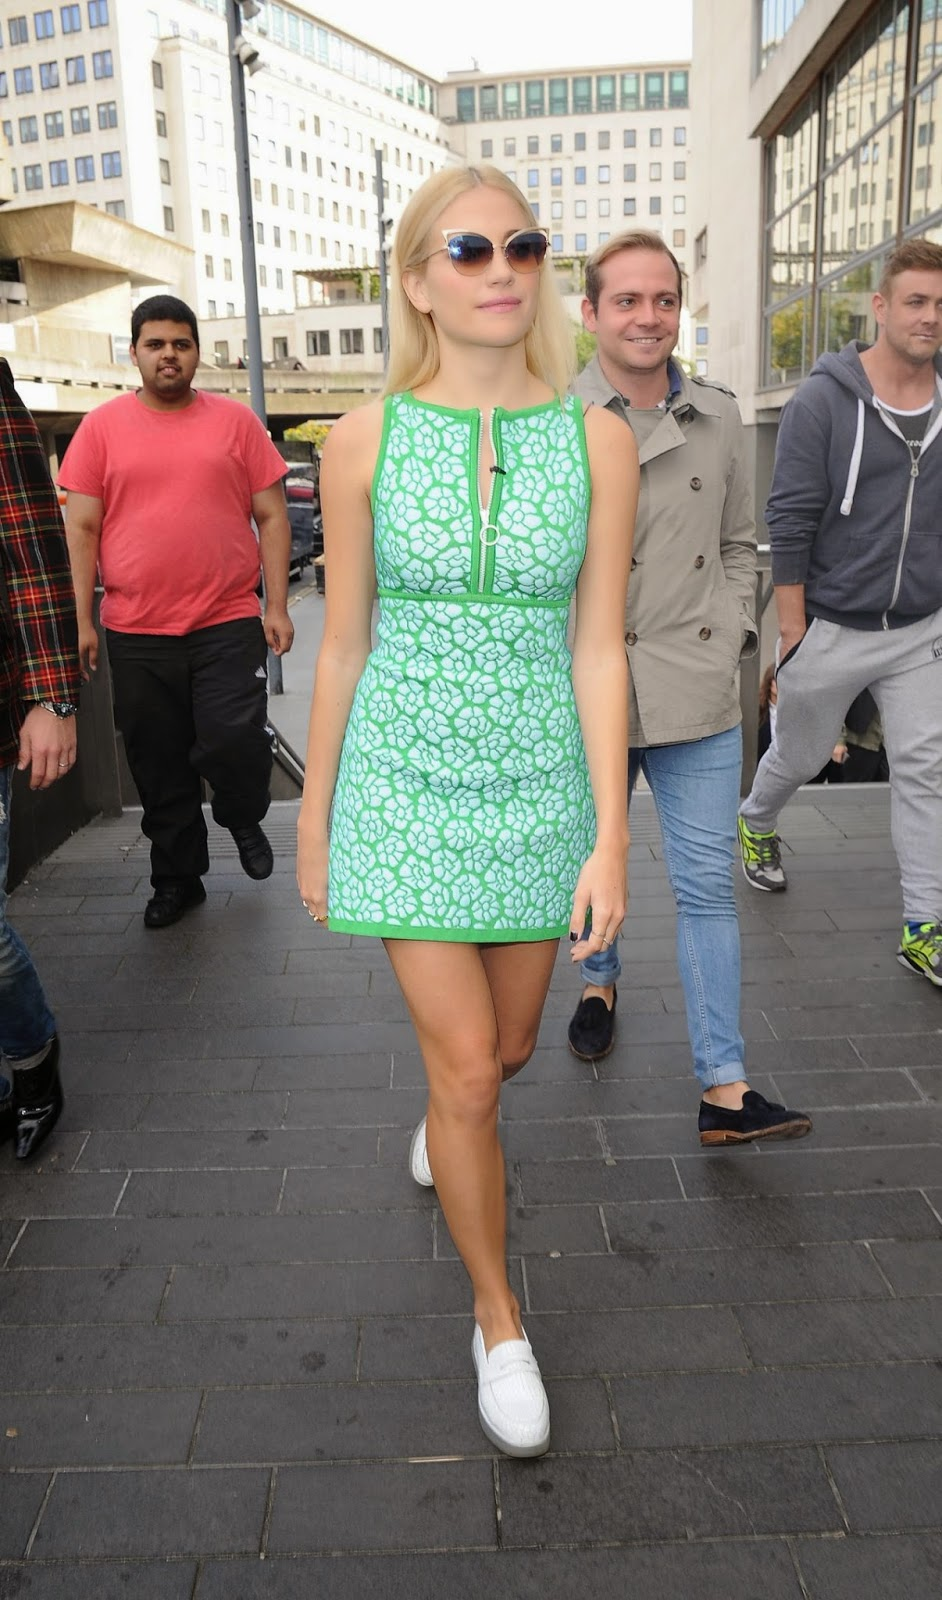 Pixie Lott arrives in a summery green dress at the ISSA London Fashion Week Show